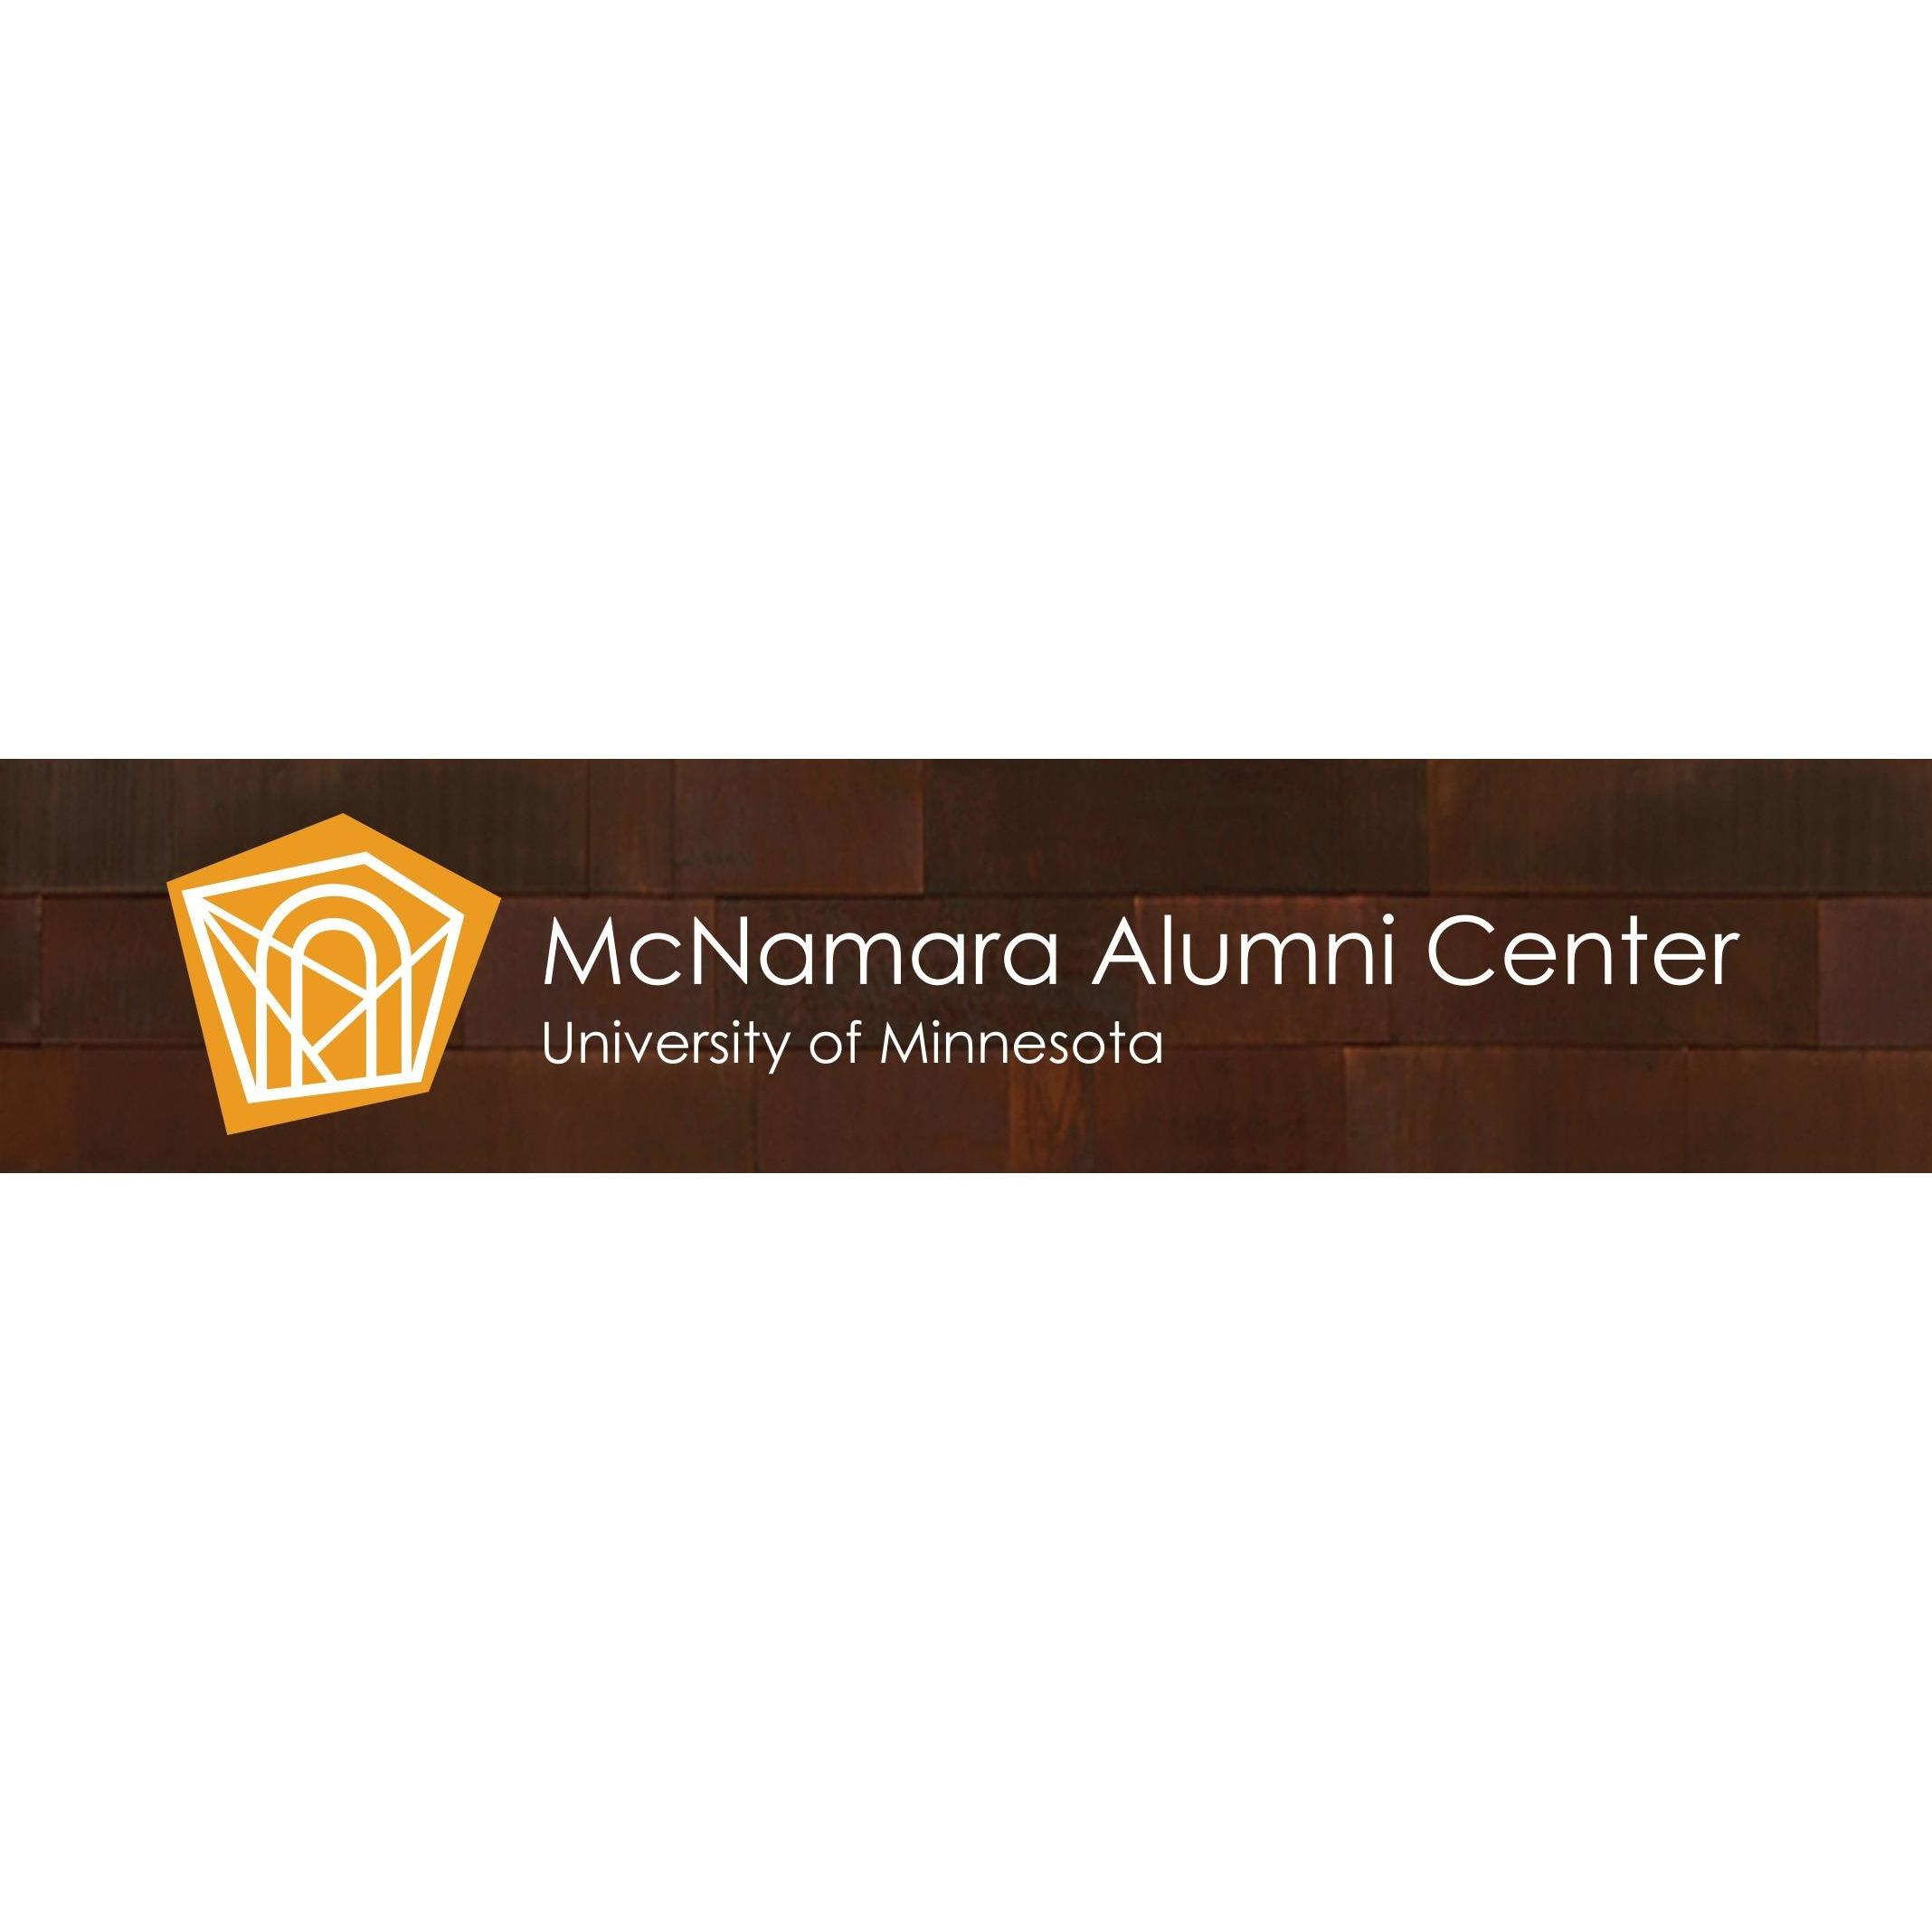 McNamara Alumni Center